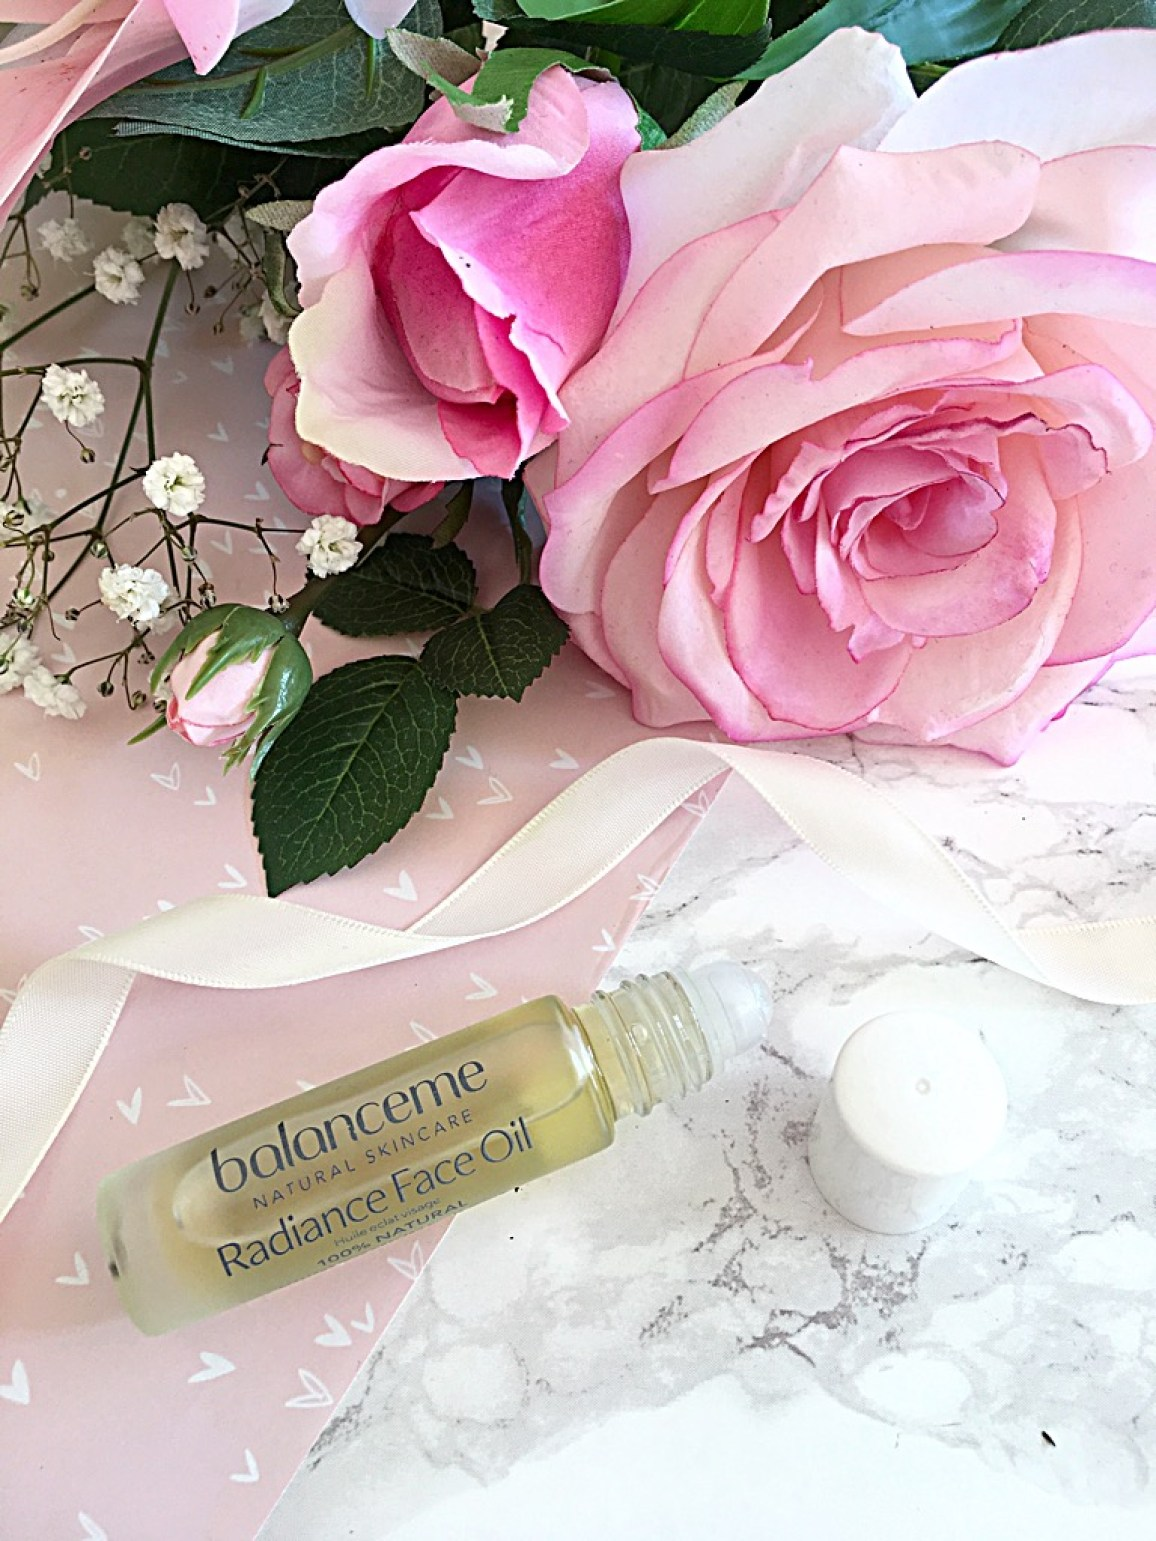 image shows a bottle of Balanceme Face Oil with roller ball application.